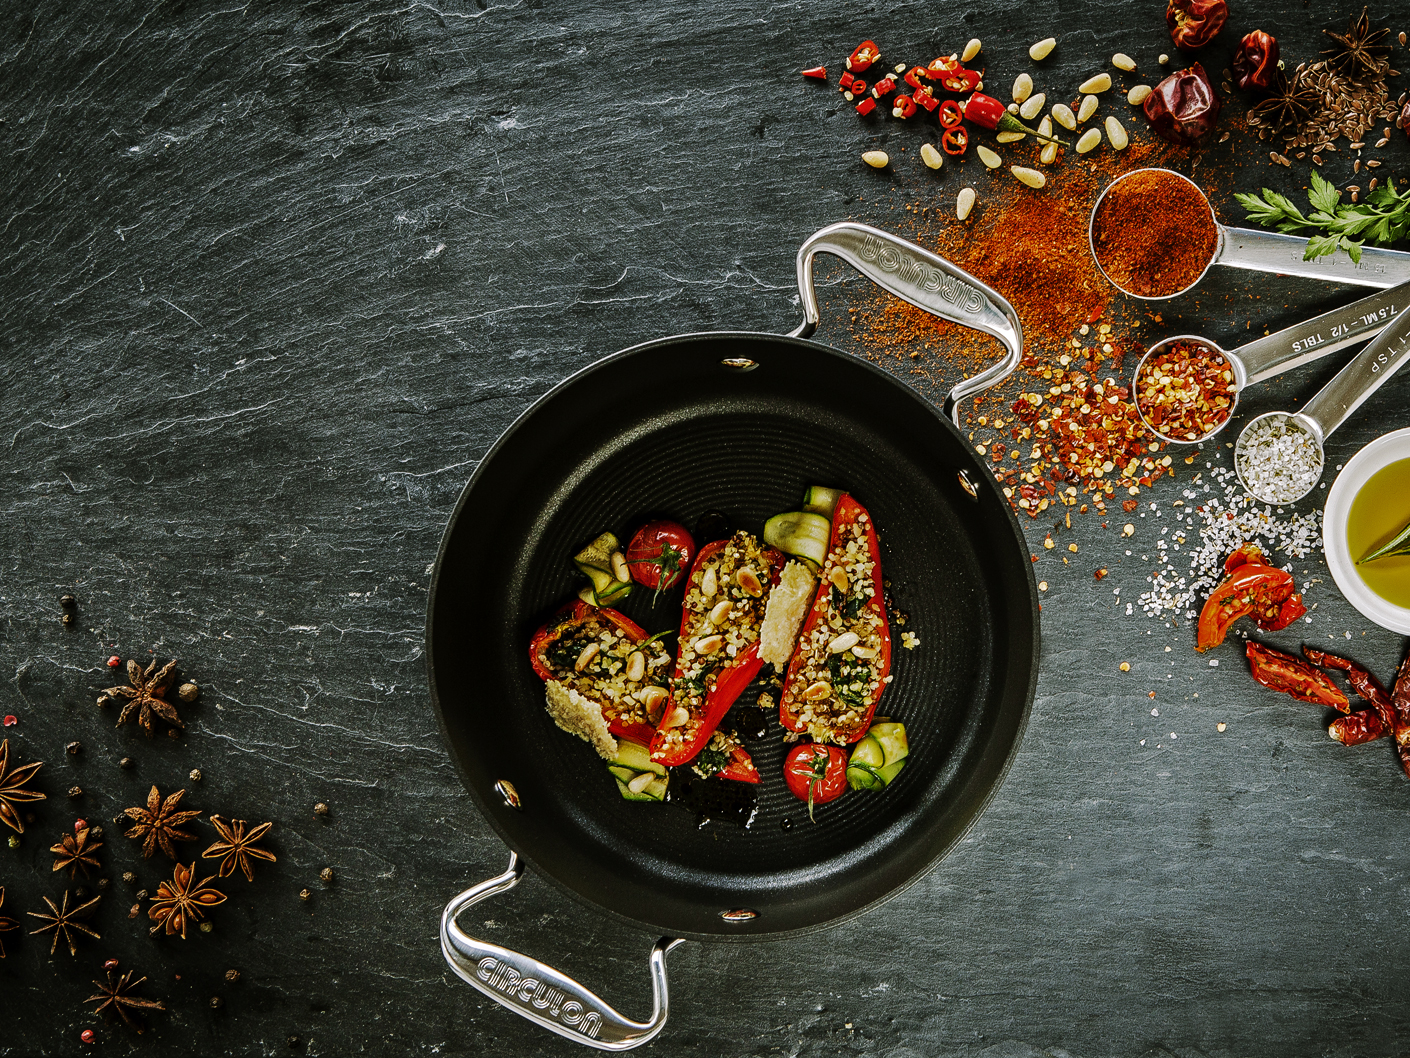 professional-food-and-product-photographer-in-manchester-chester-and-liverpool